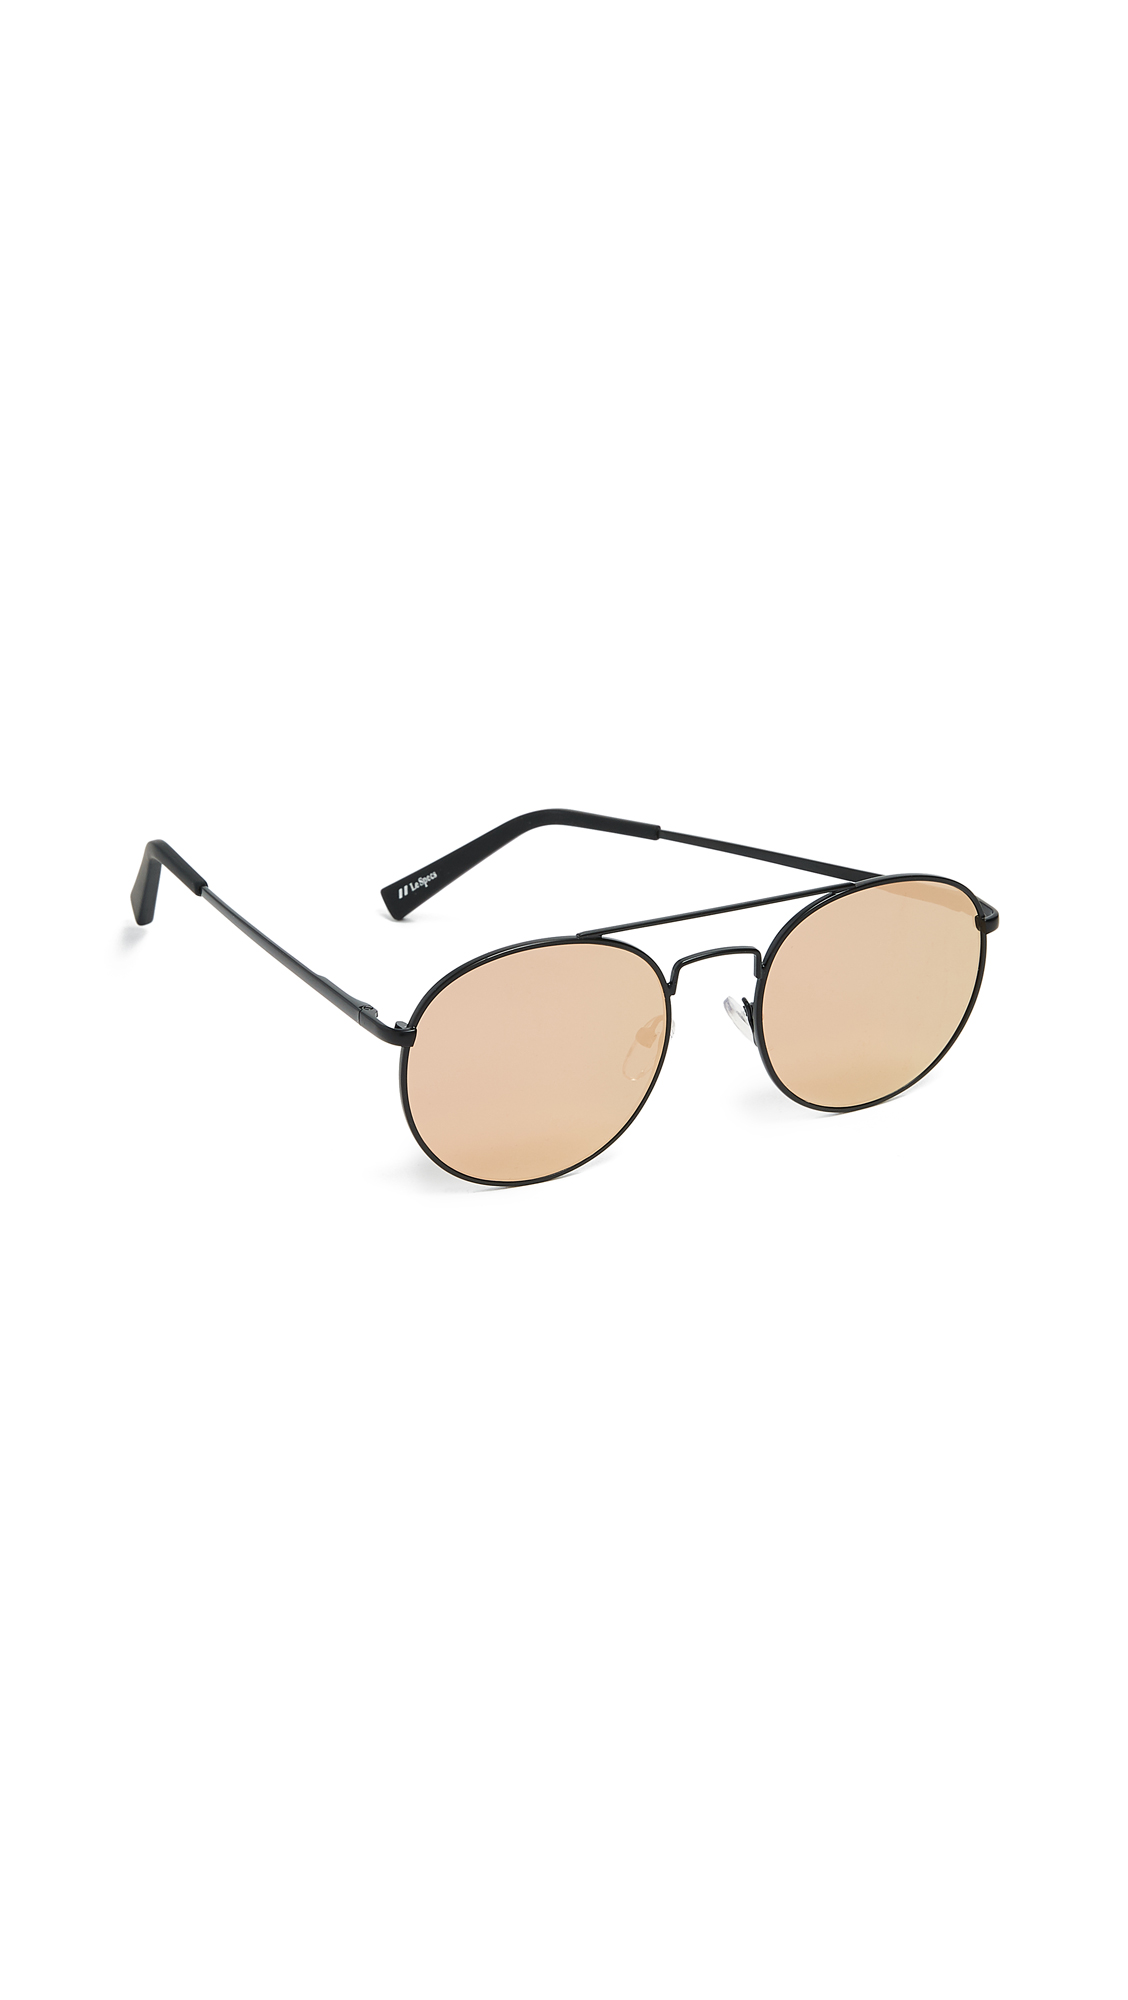 Le Specs Revolution Sunglasses In Matte Black/Brass Revo Mirror